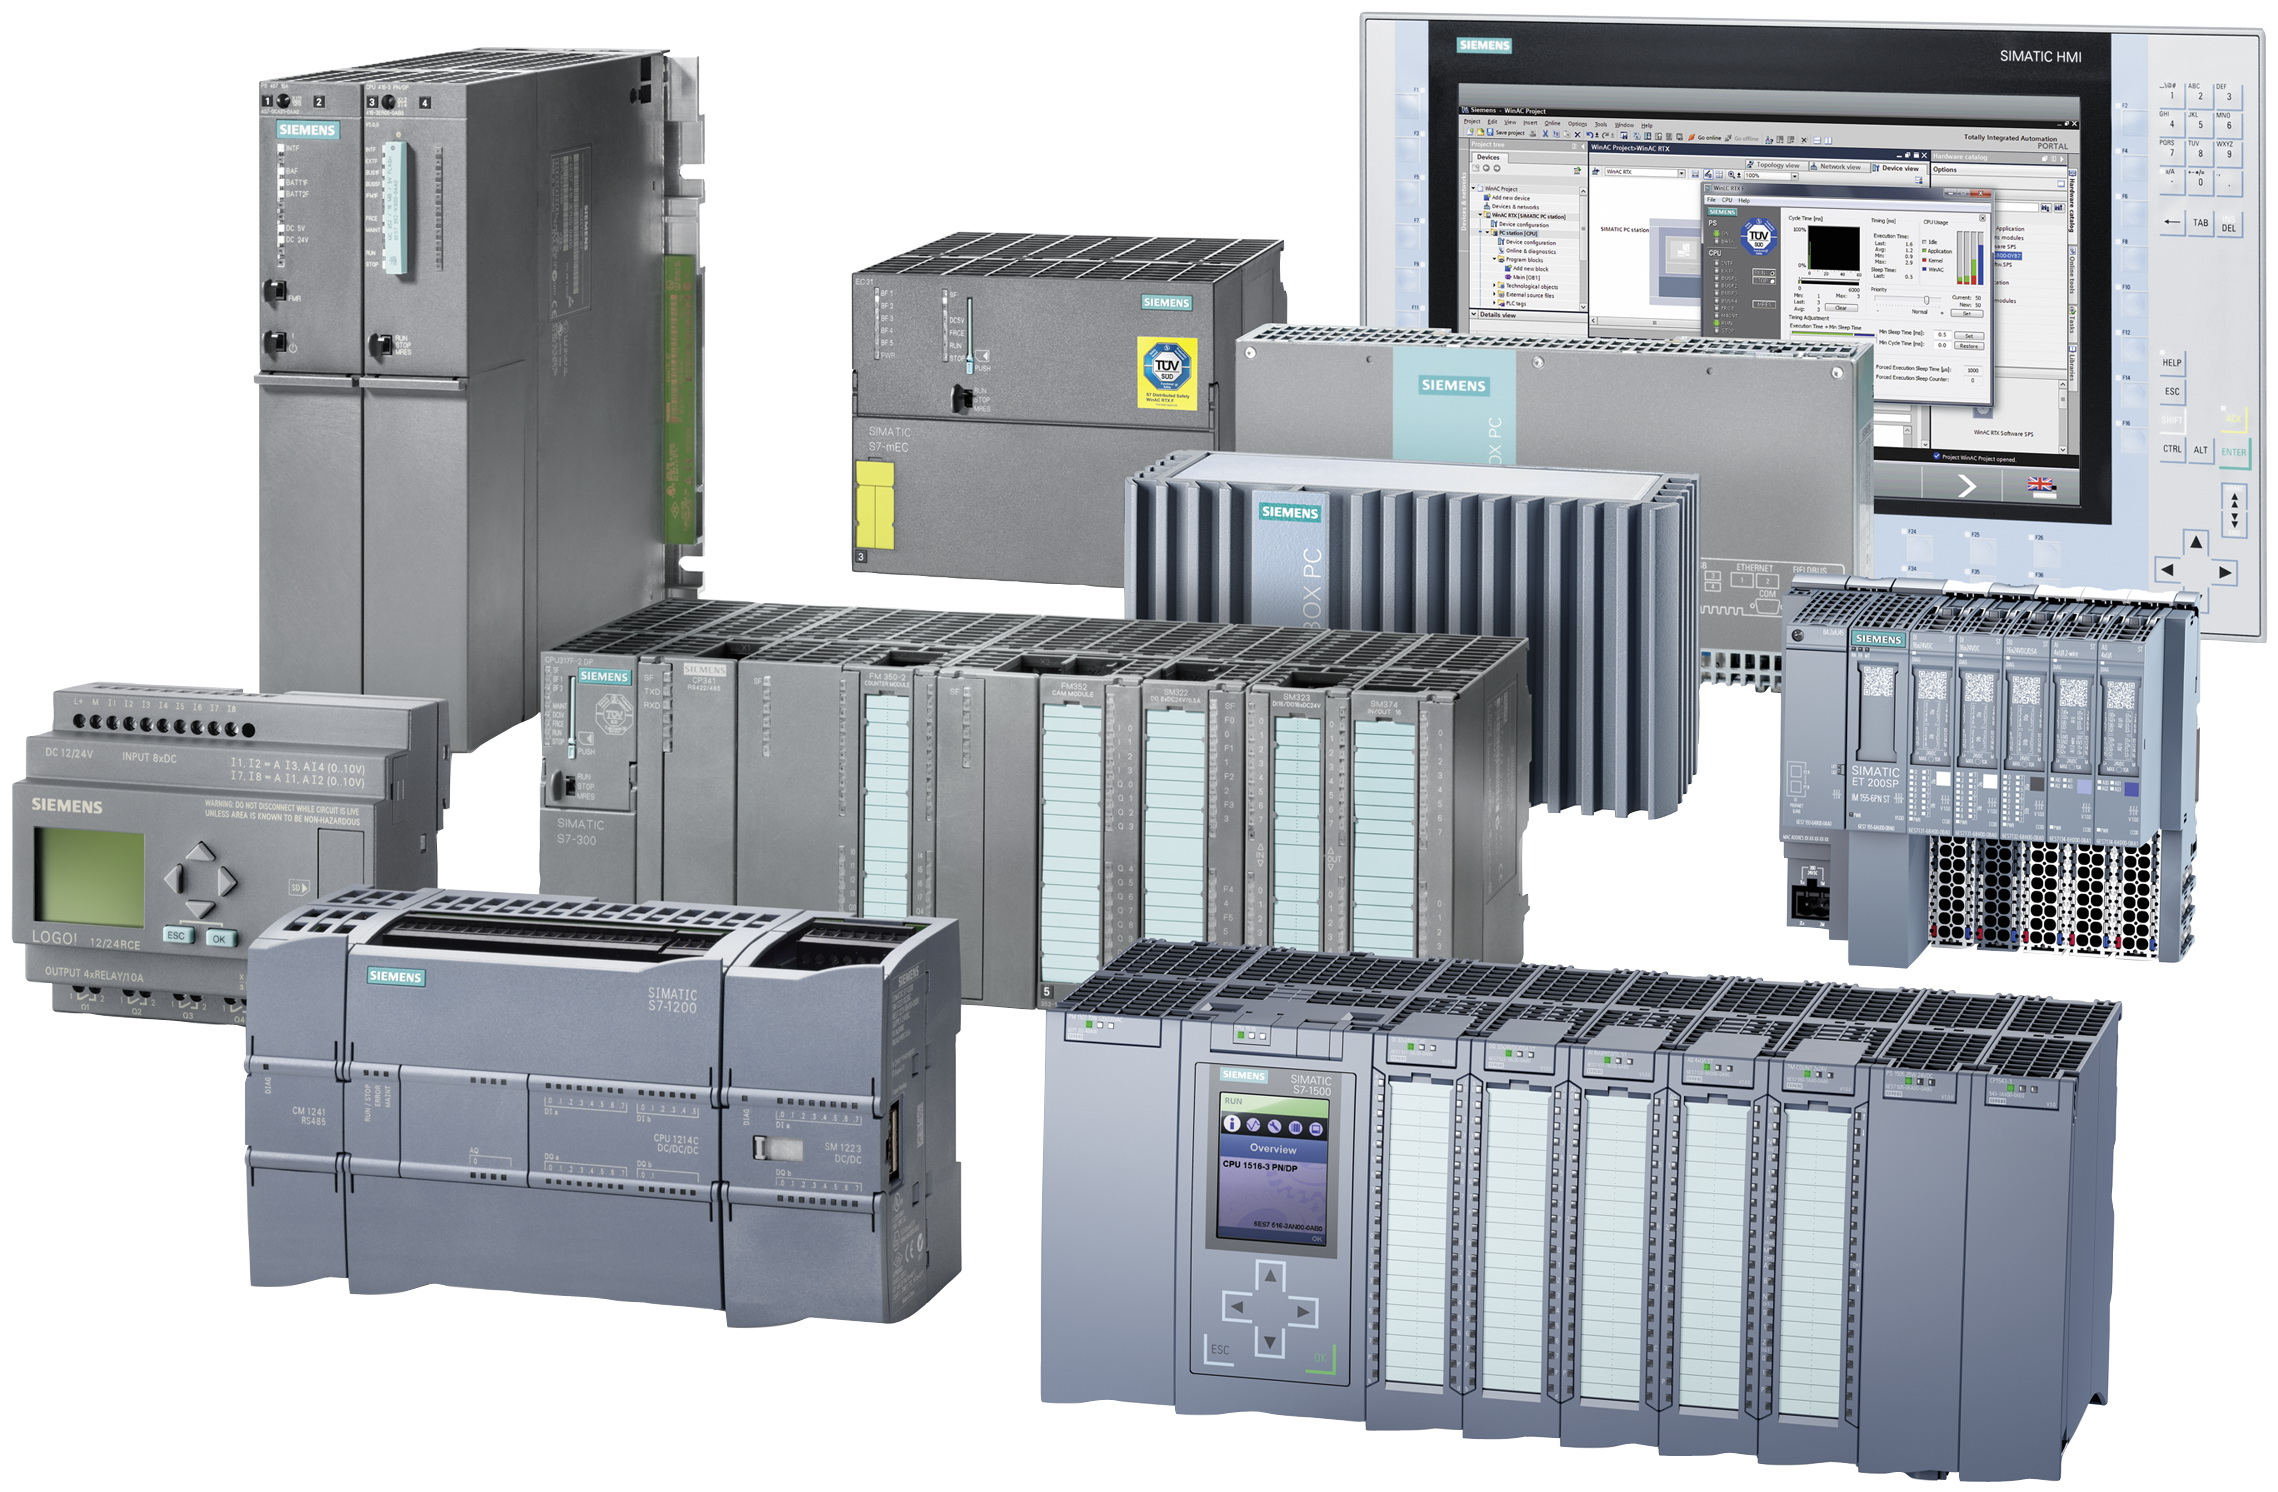 Siemens: PLC Family Selection Guide